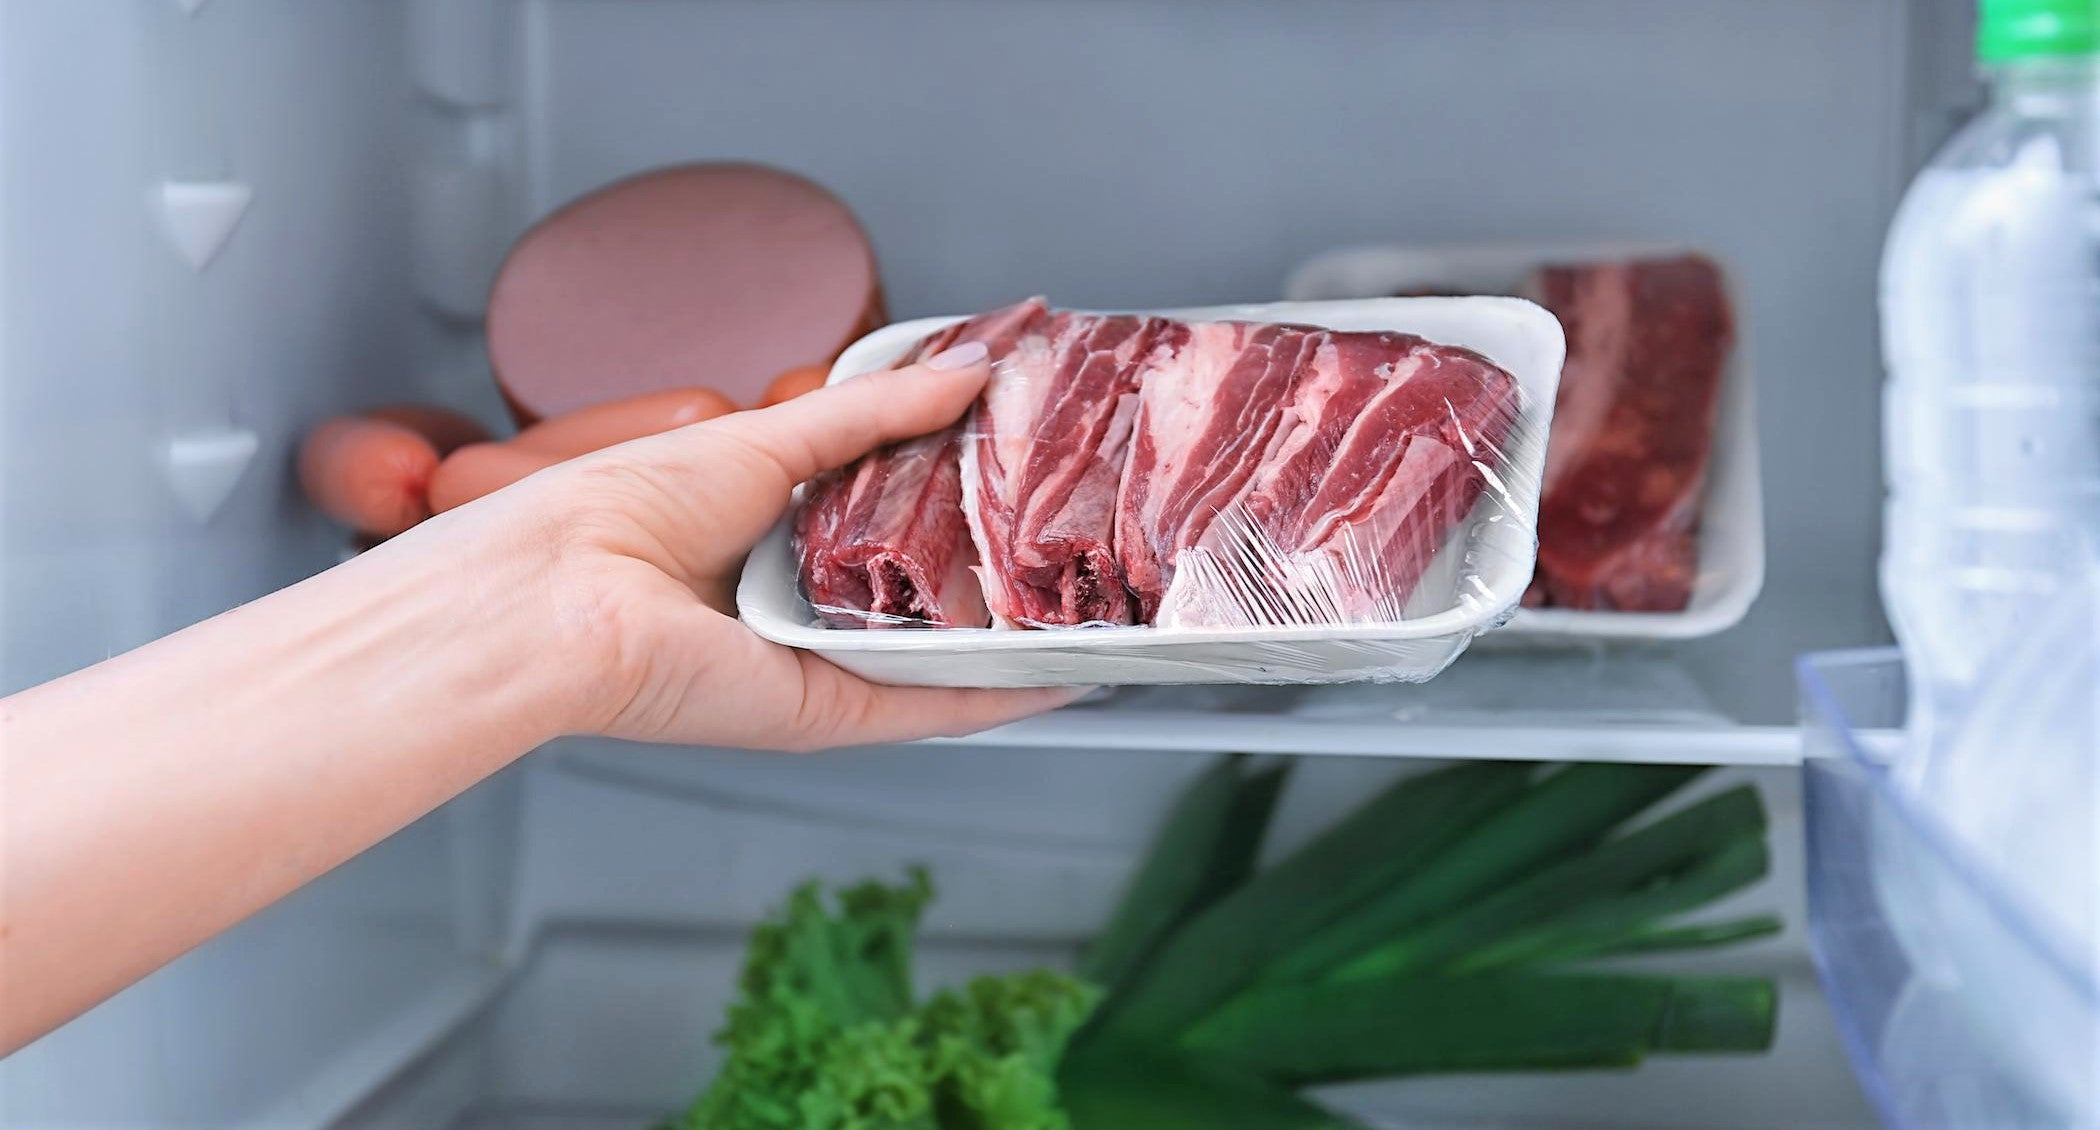 person's hand reaching into fridge pulls out packet of meat